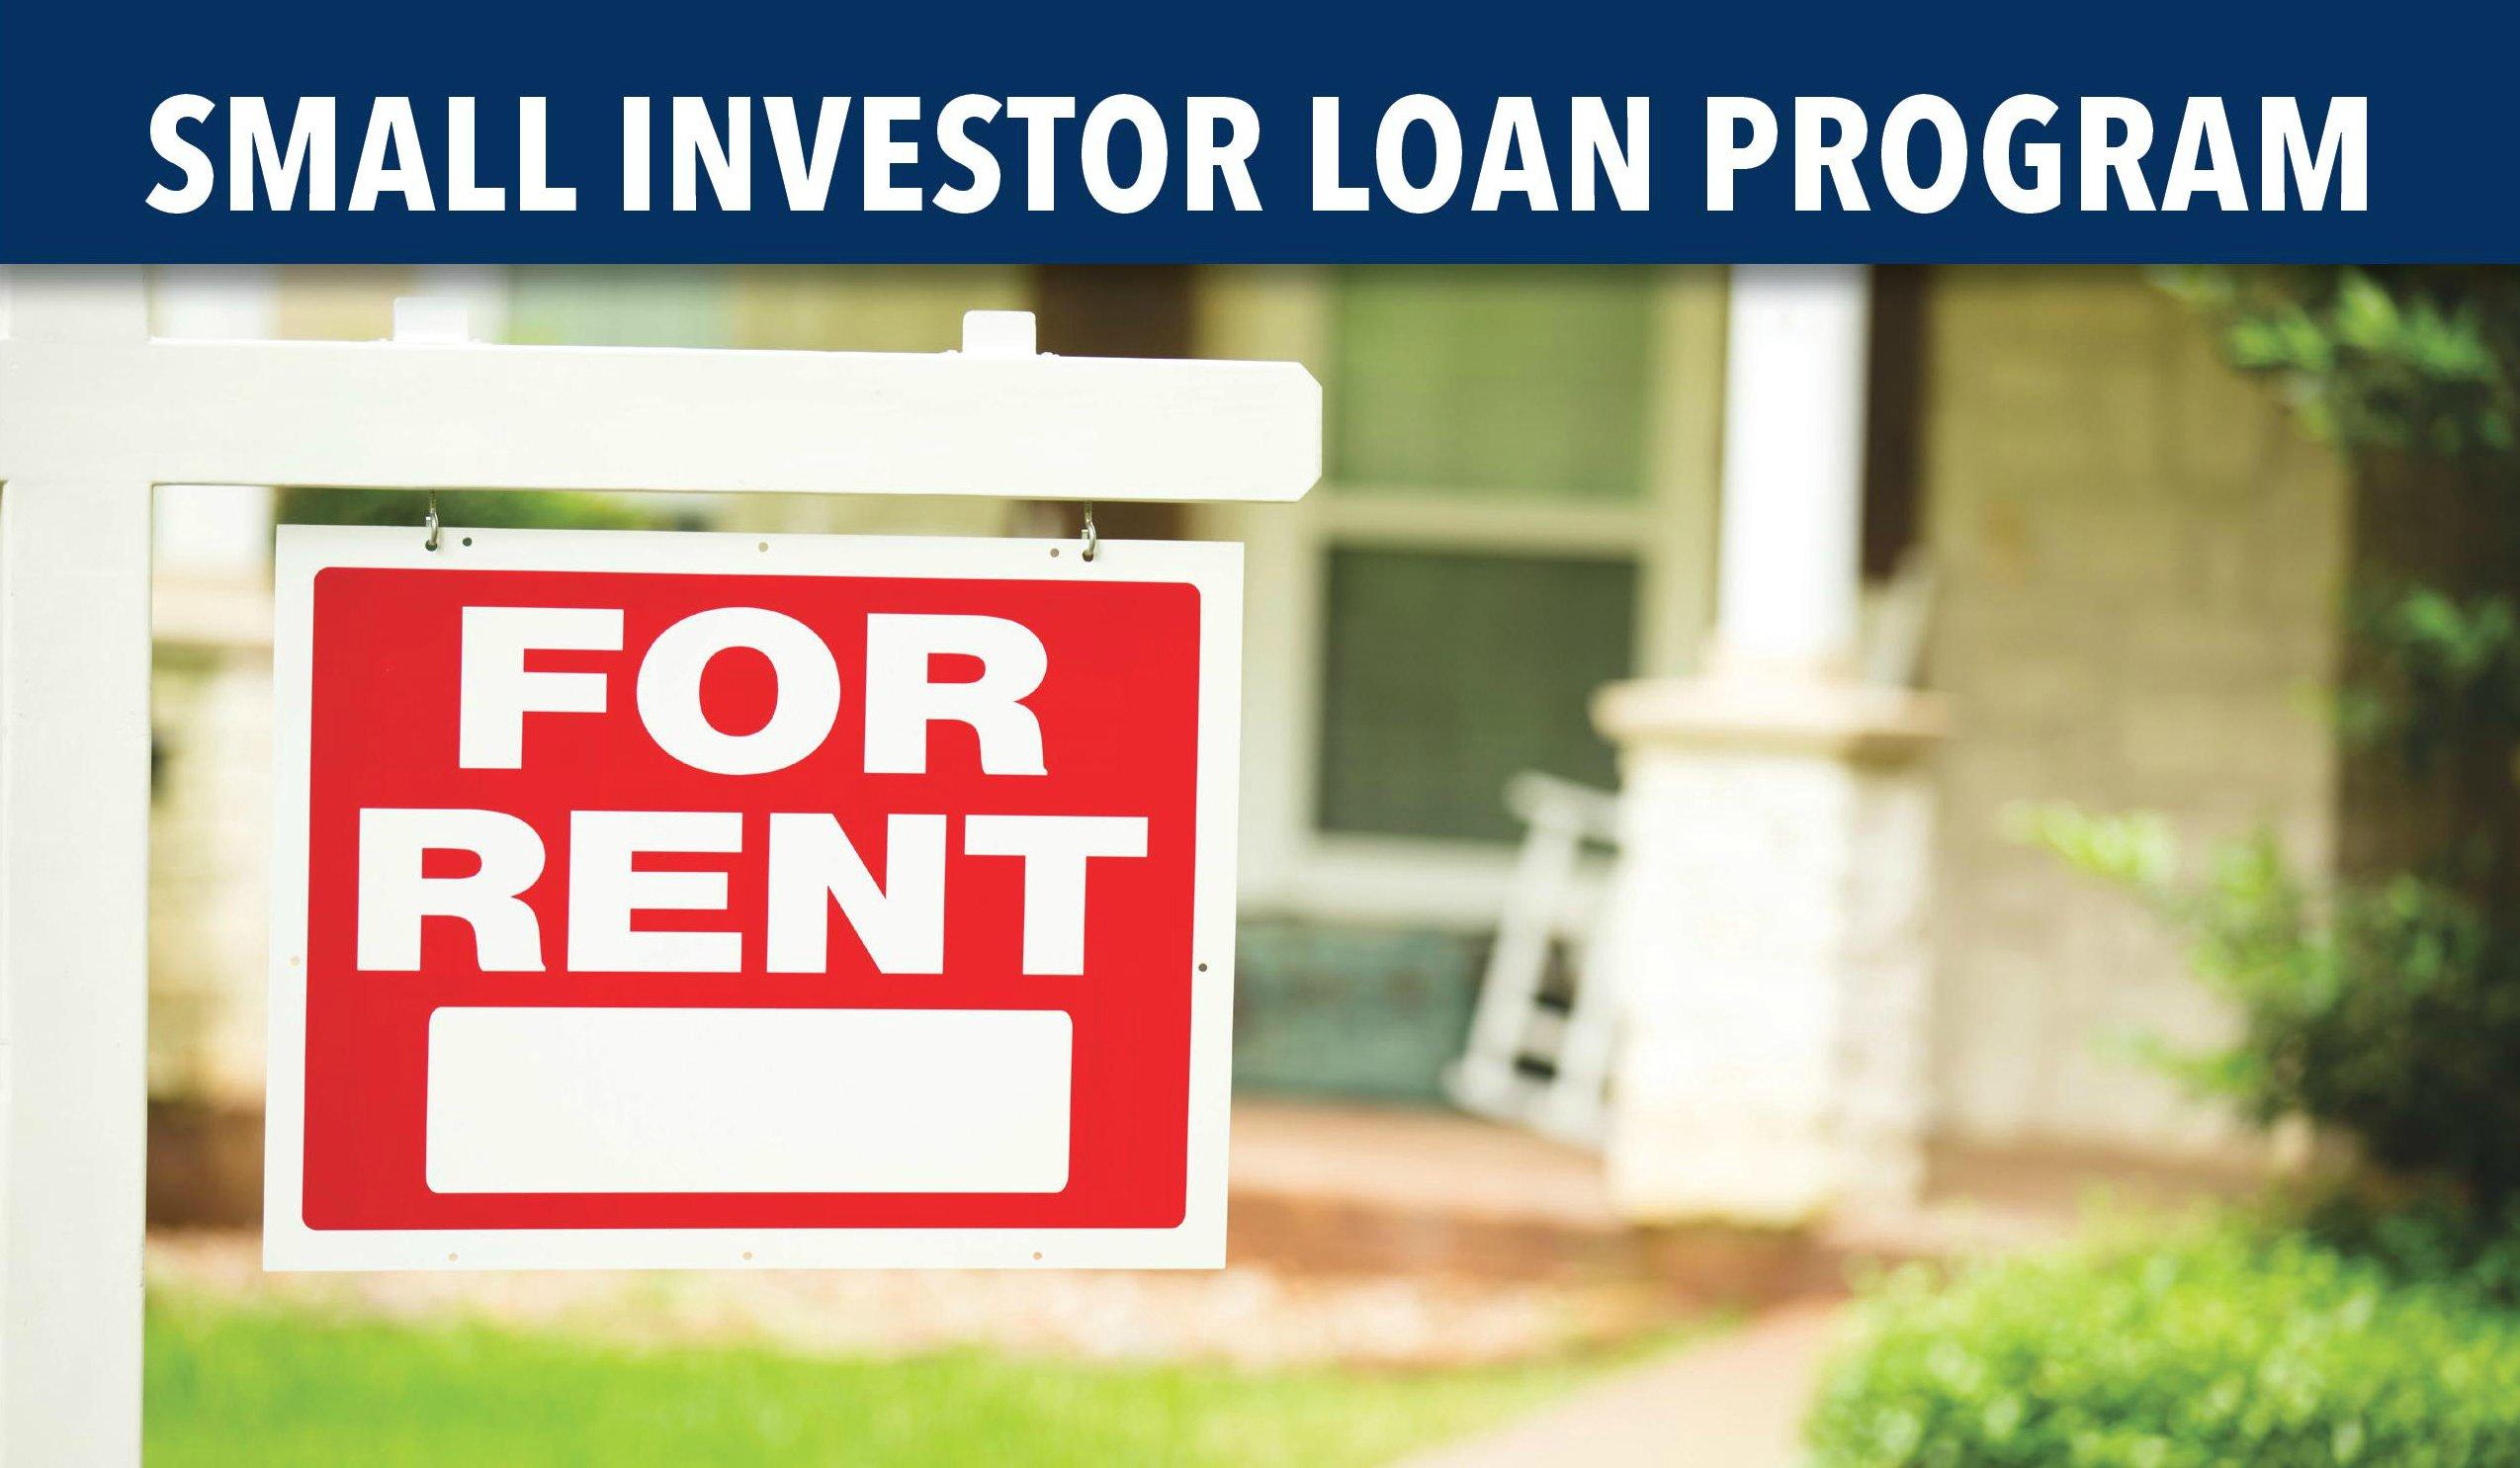 Small investor loan program. For rent sign